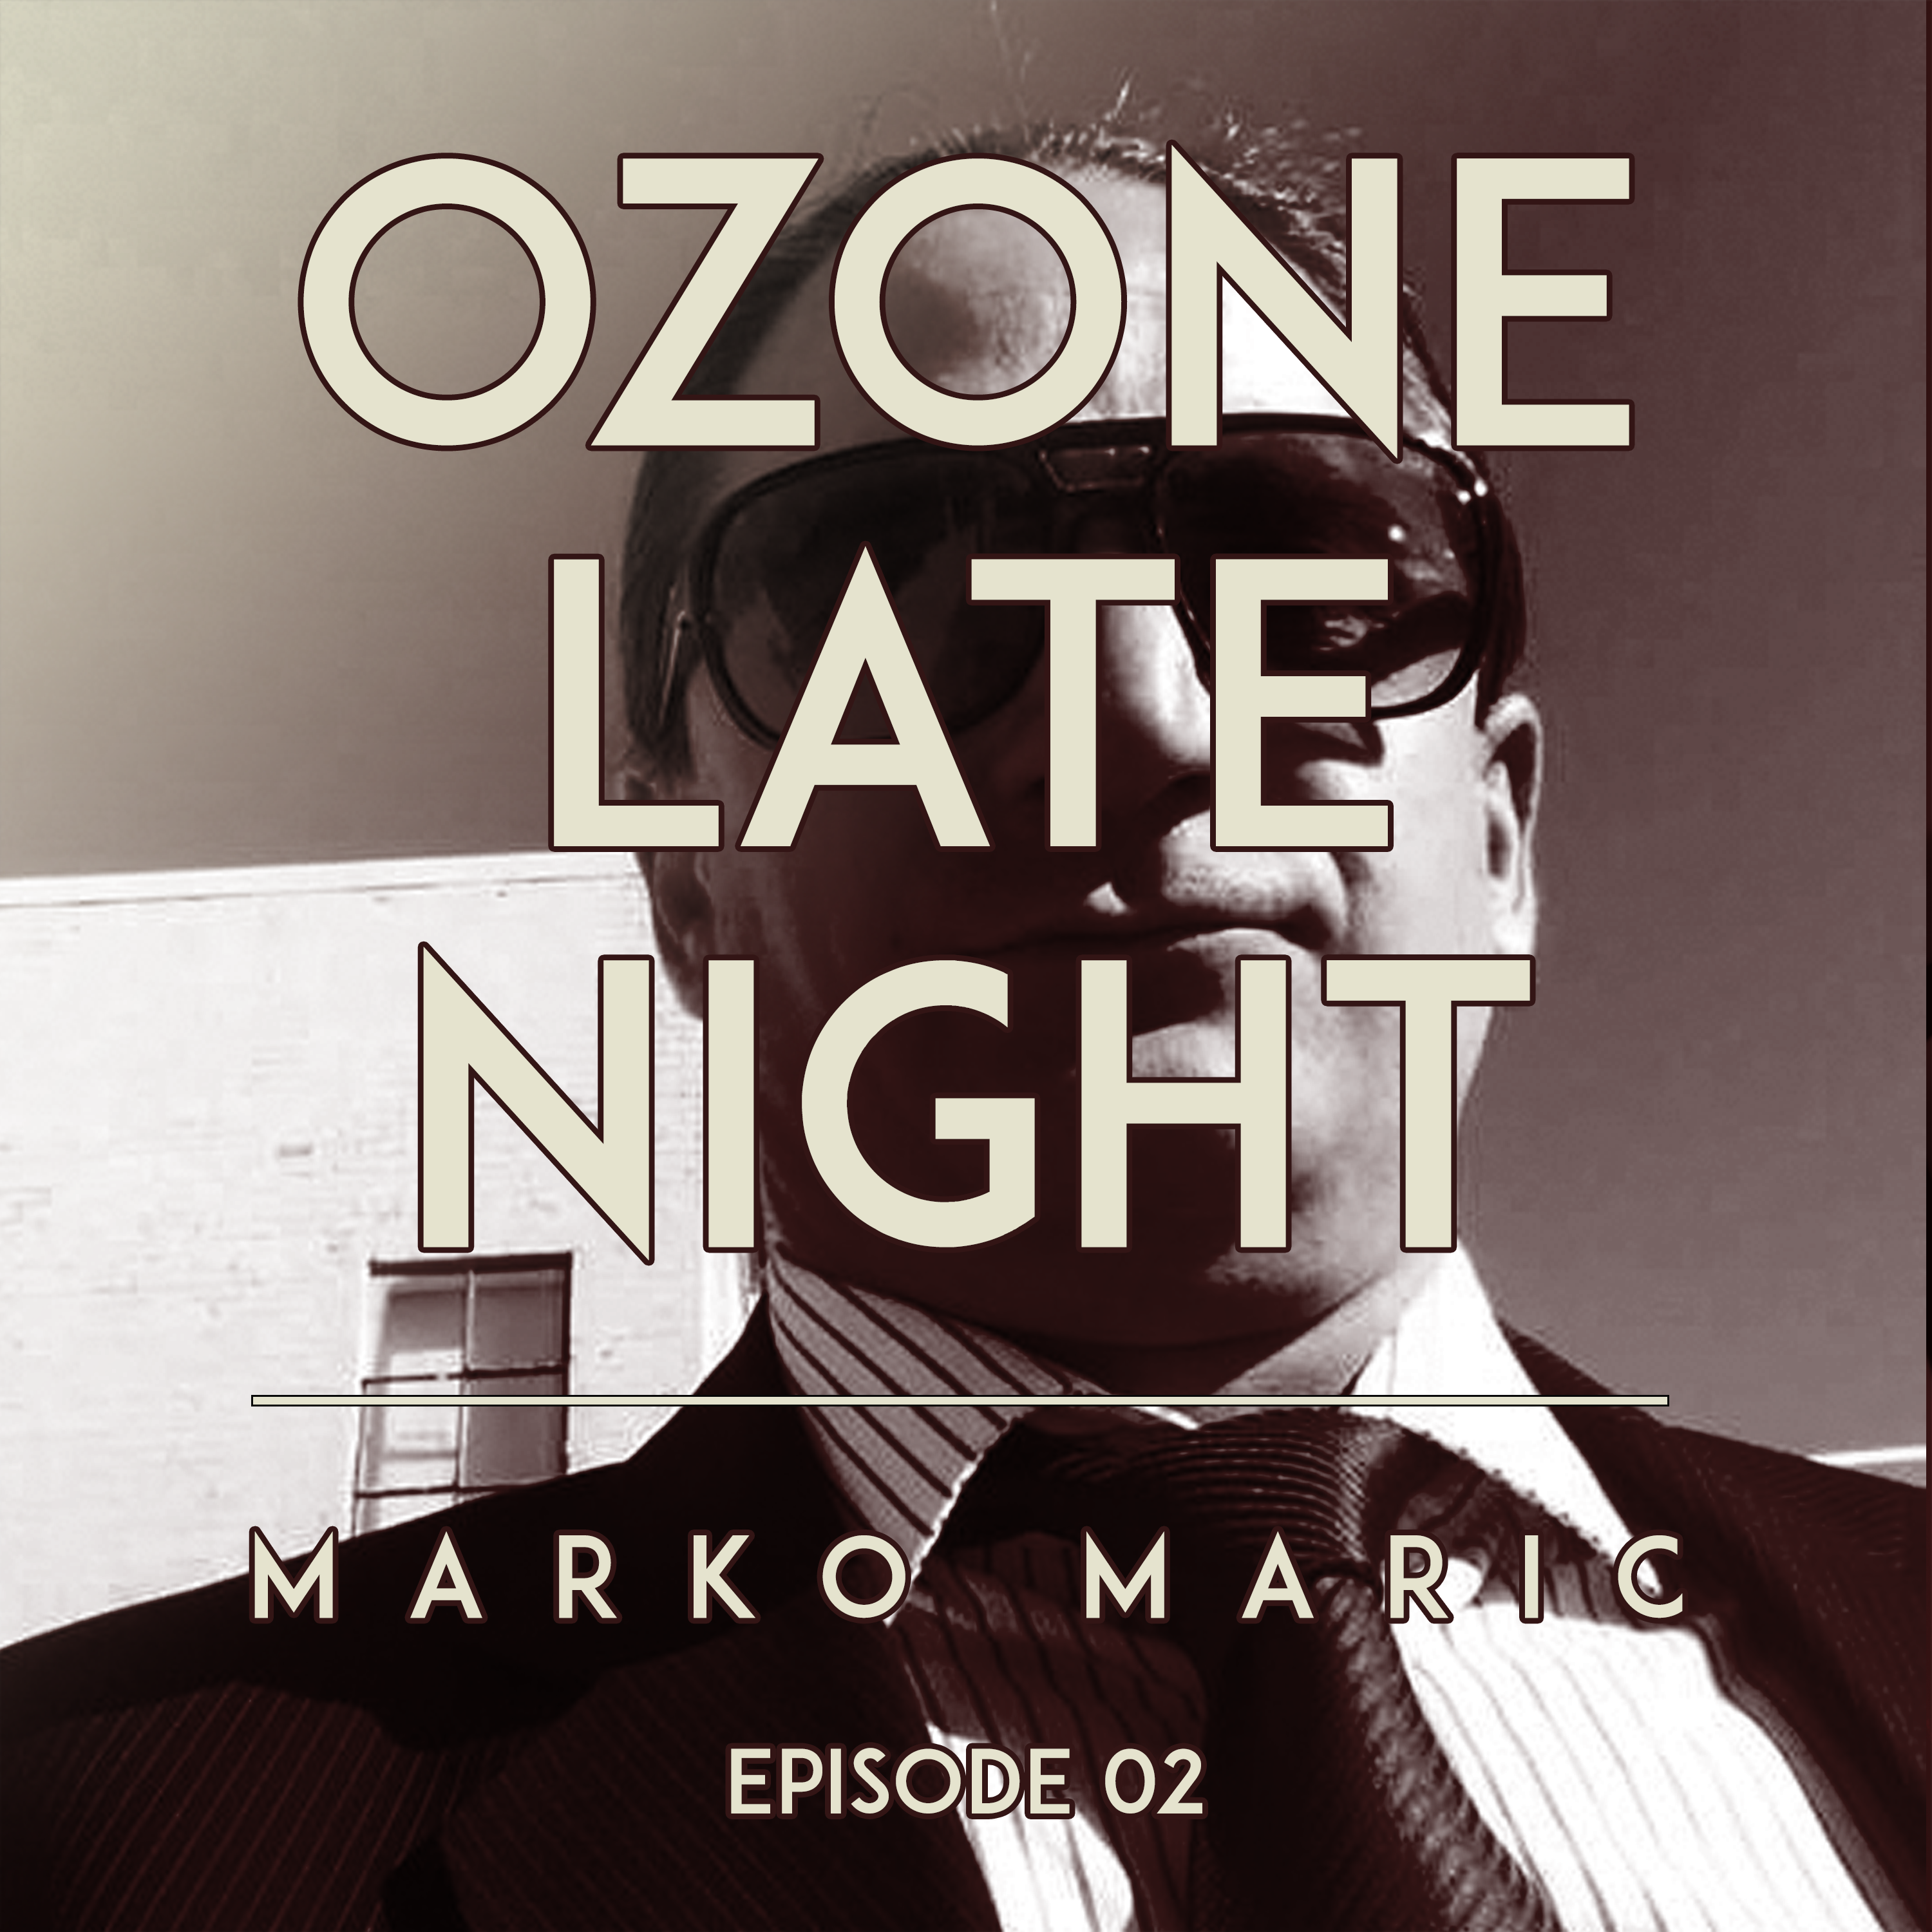 Artwork for Ozone Late Night: Marko Maric (Part 2)